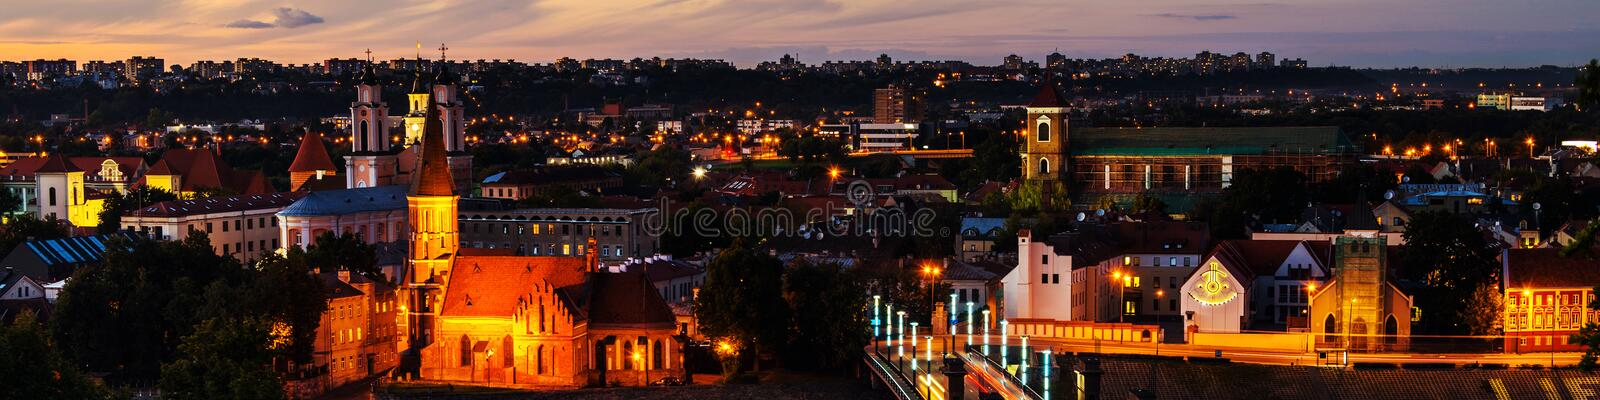 Aerial view of famous city Kaunas, Lithuania at sunset. Night view. Kaunas, Lithuania. Aerial view of famous city Kaunas, Lithuania at sunset. Night view of royalty free stock image